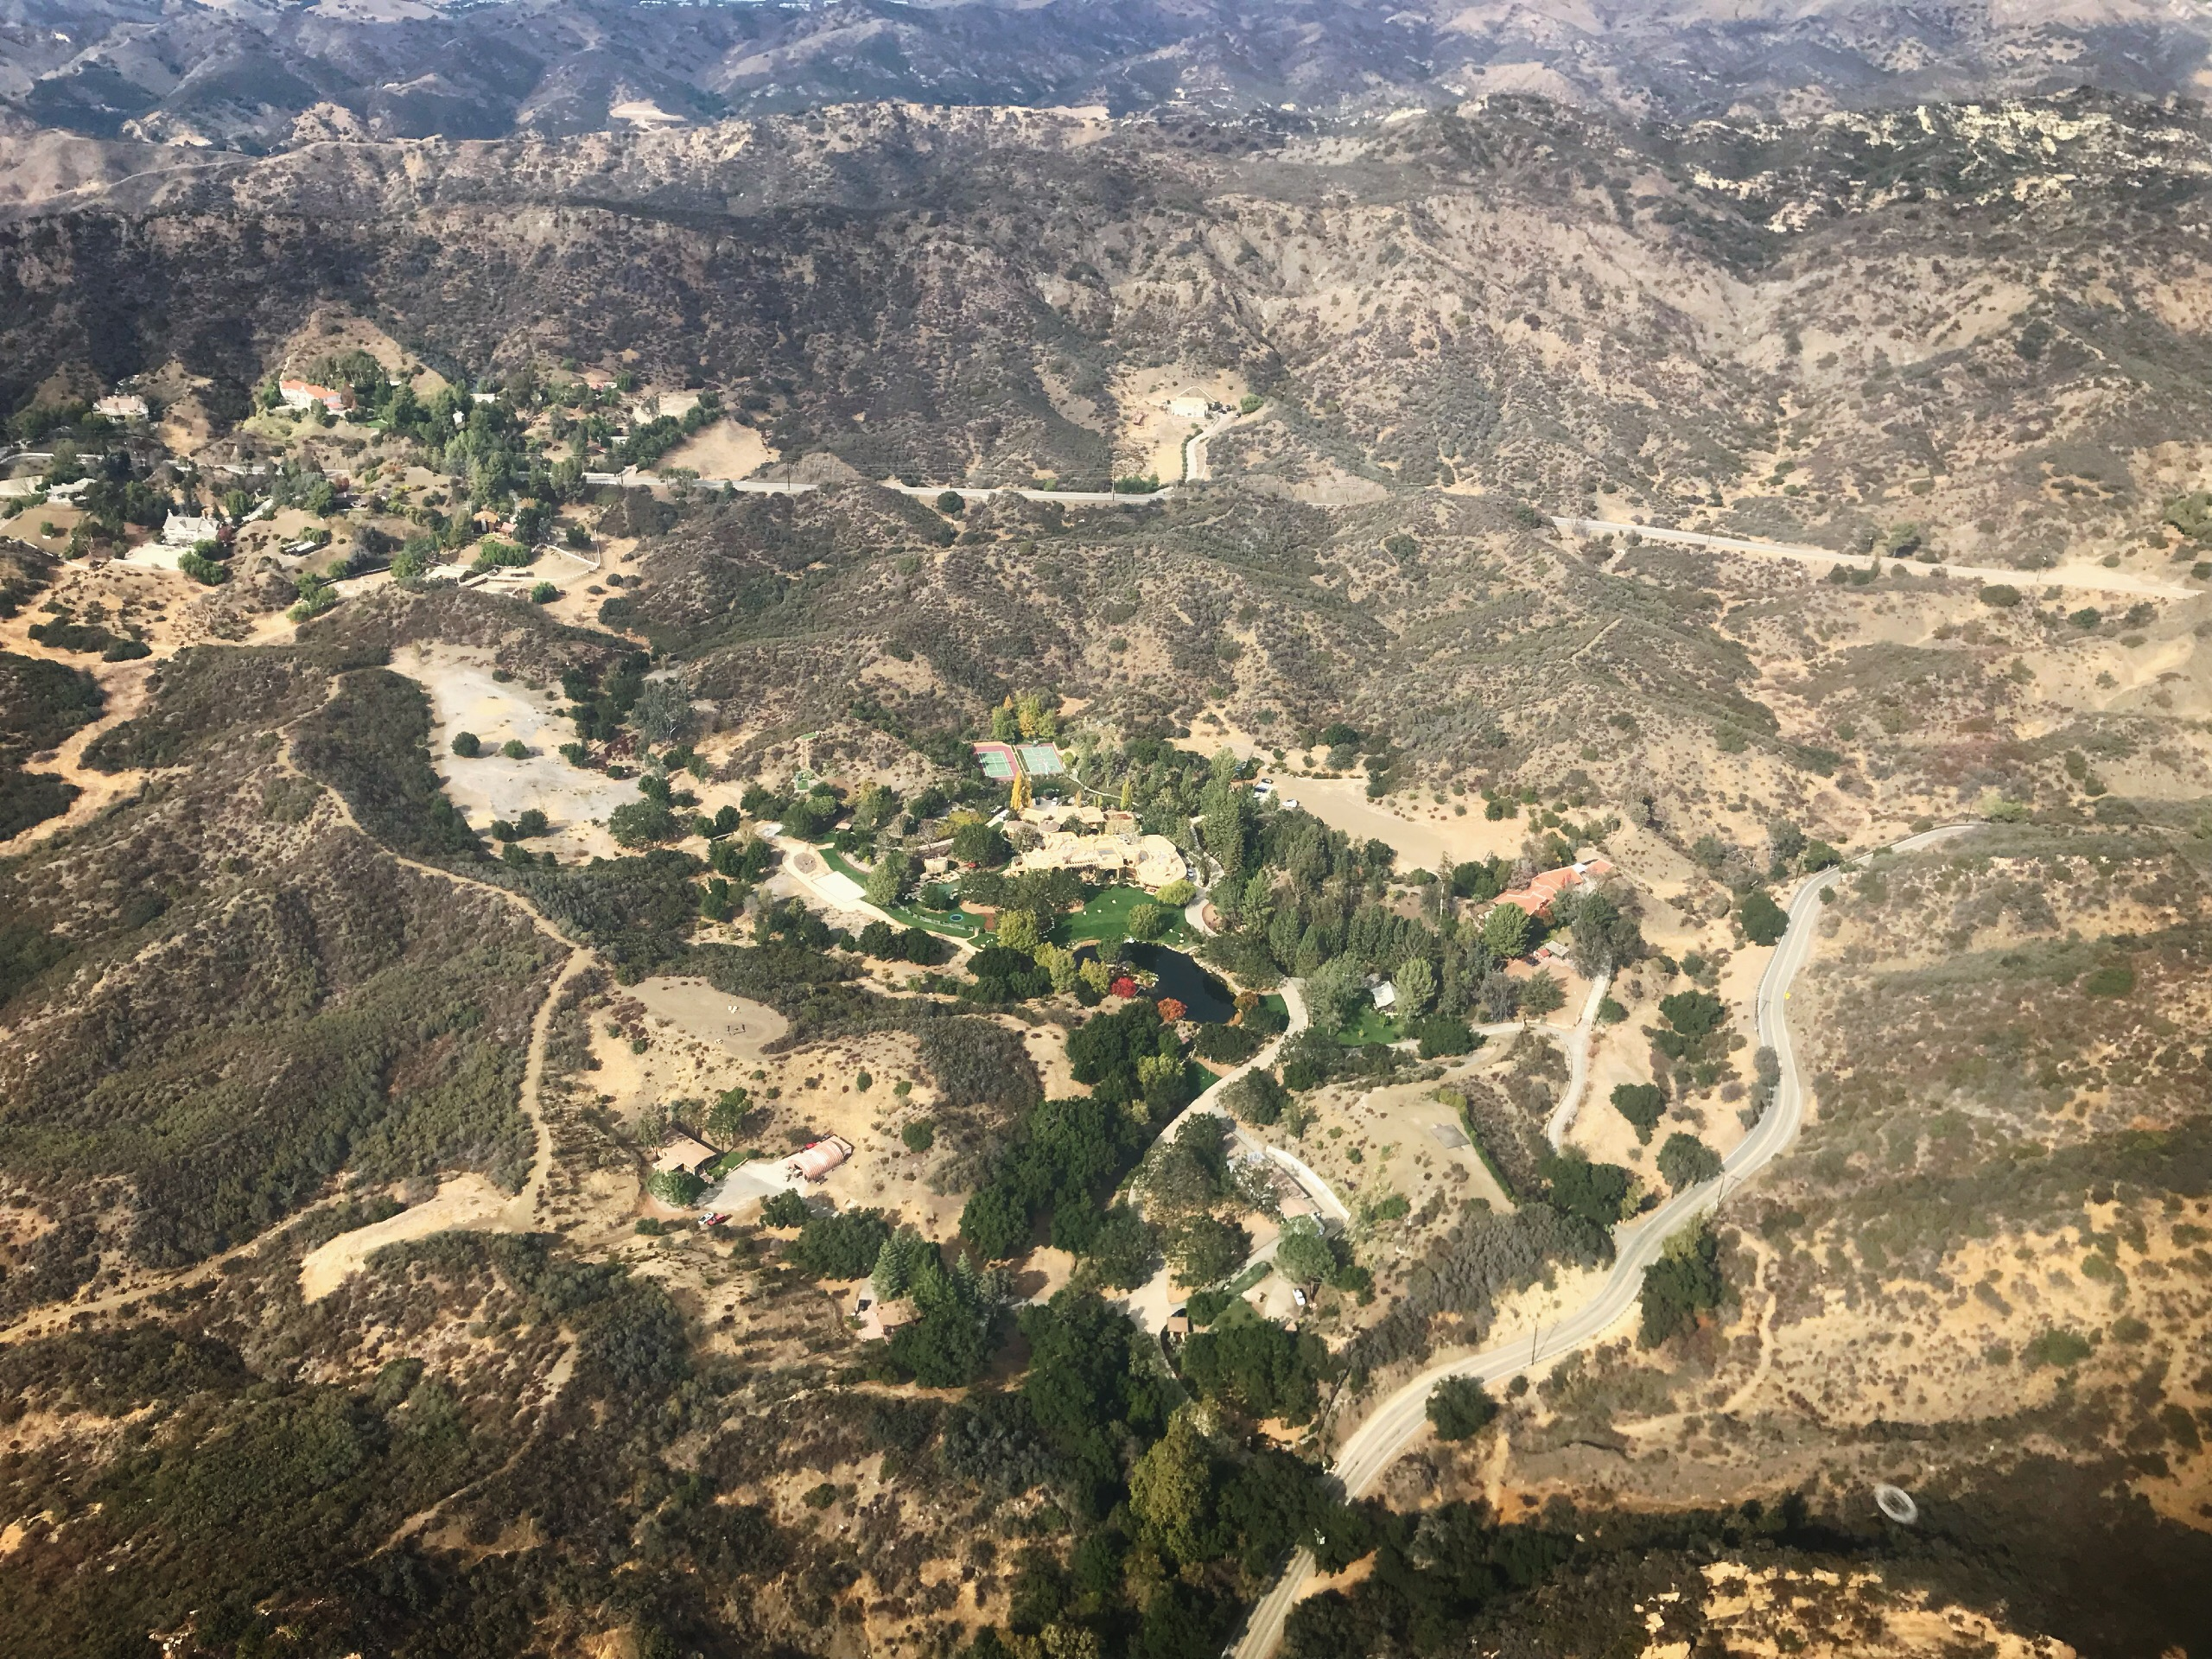 Will Smith Calabasas house helicopter view